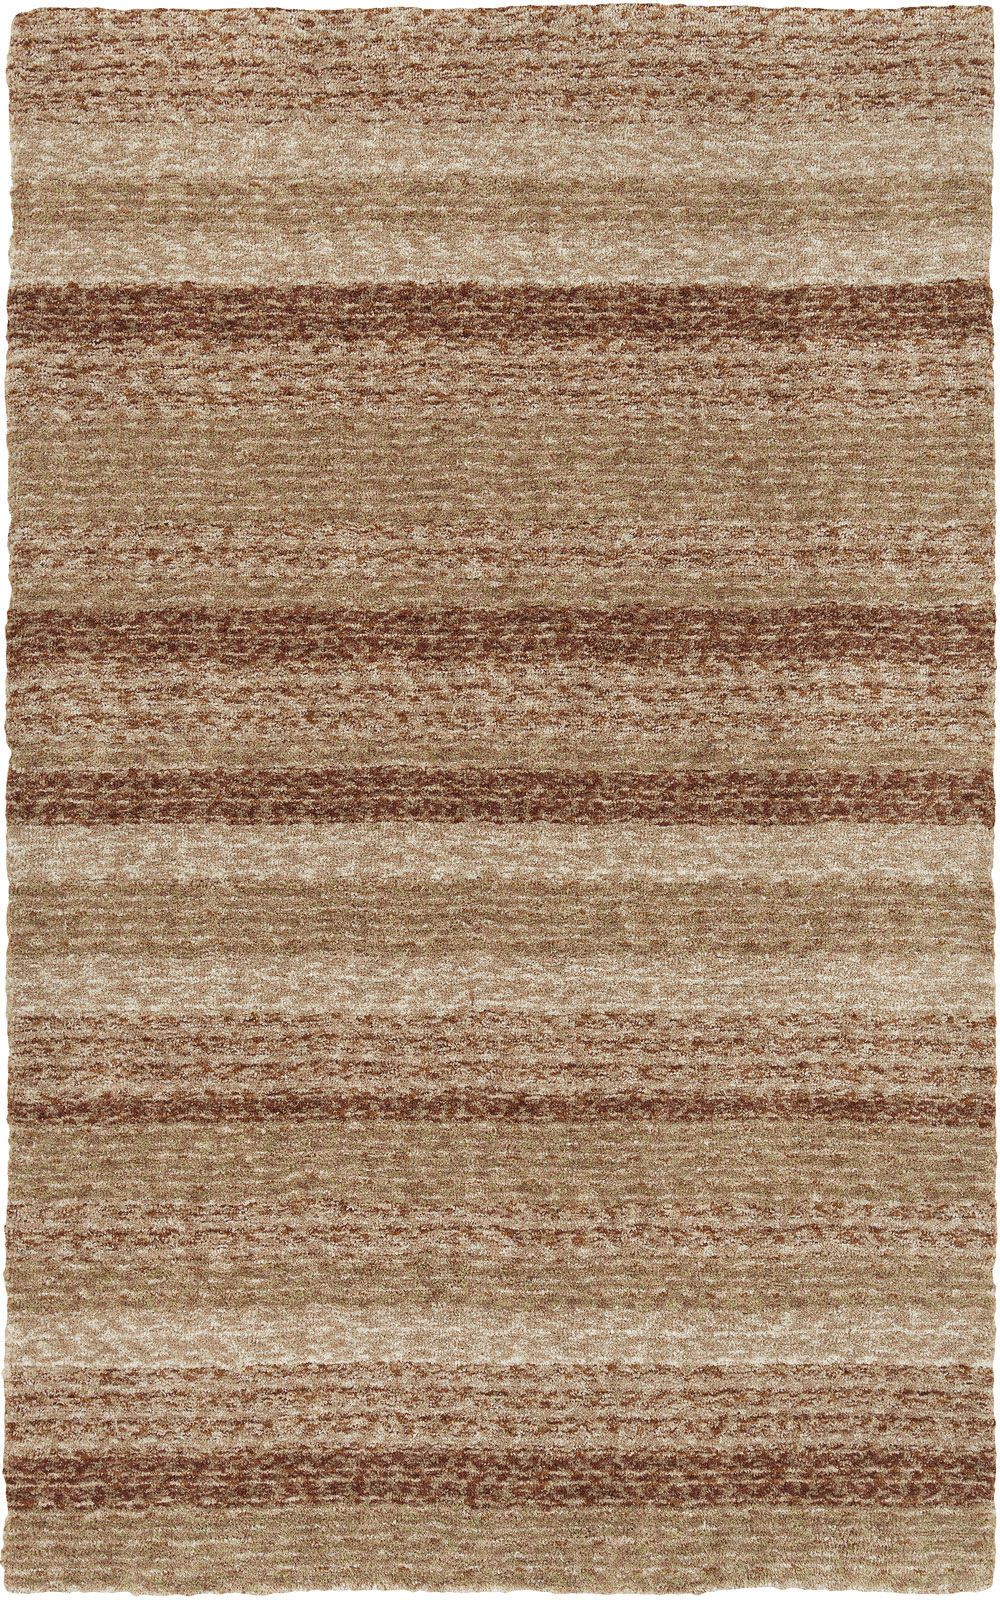 Dalyn Joplin JP1 Sunset Rug